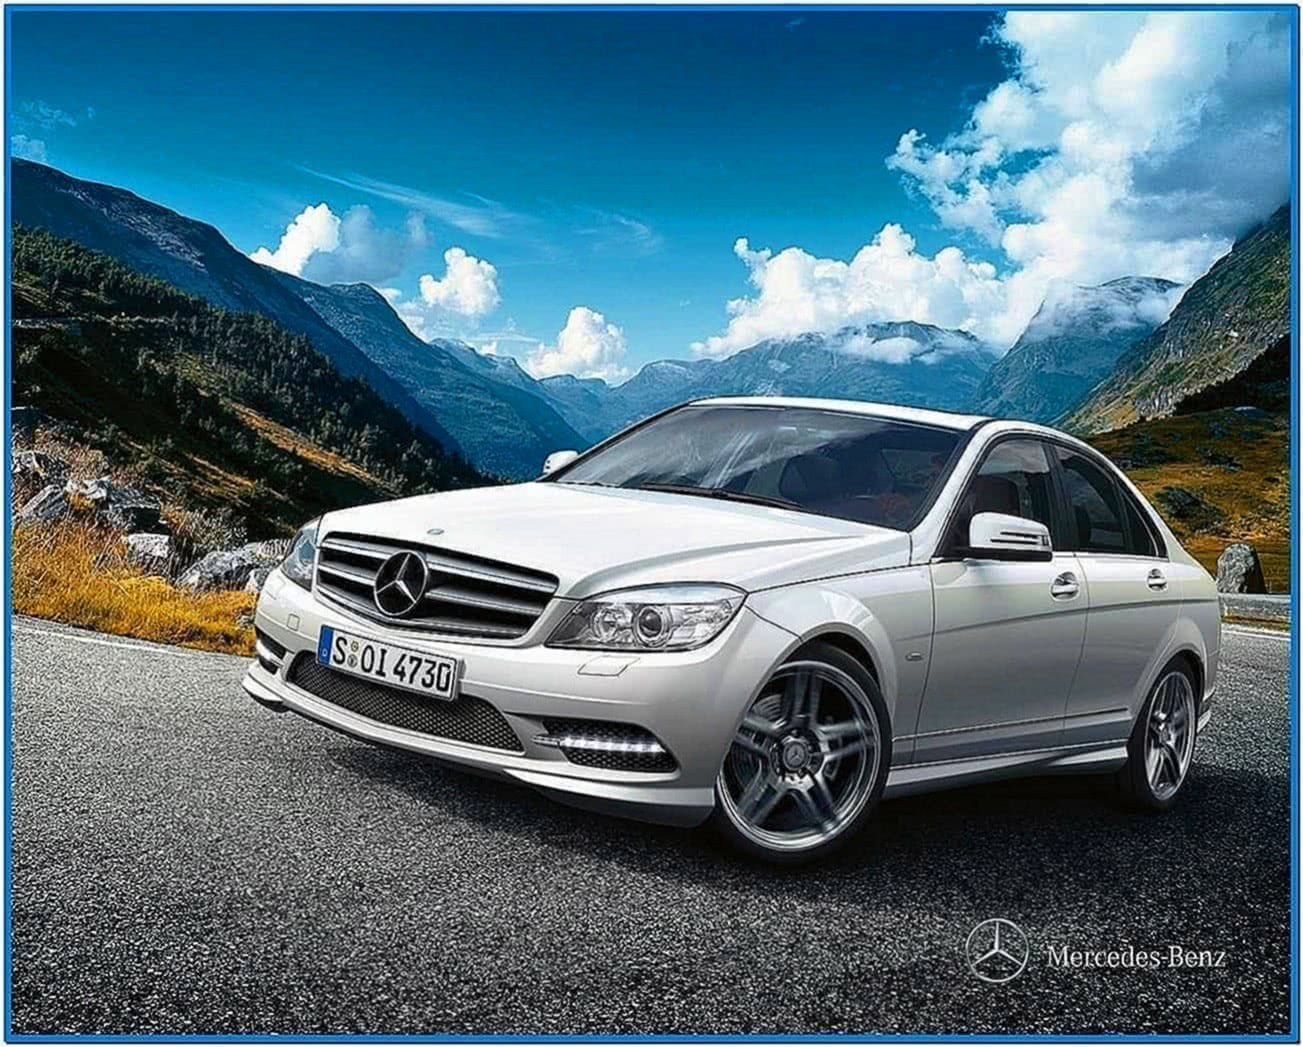 Mercedes Benz C Class Screensaver